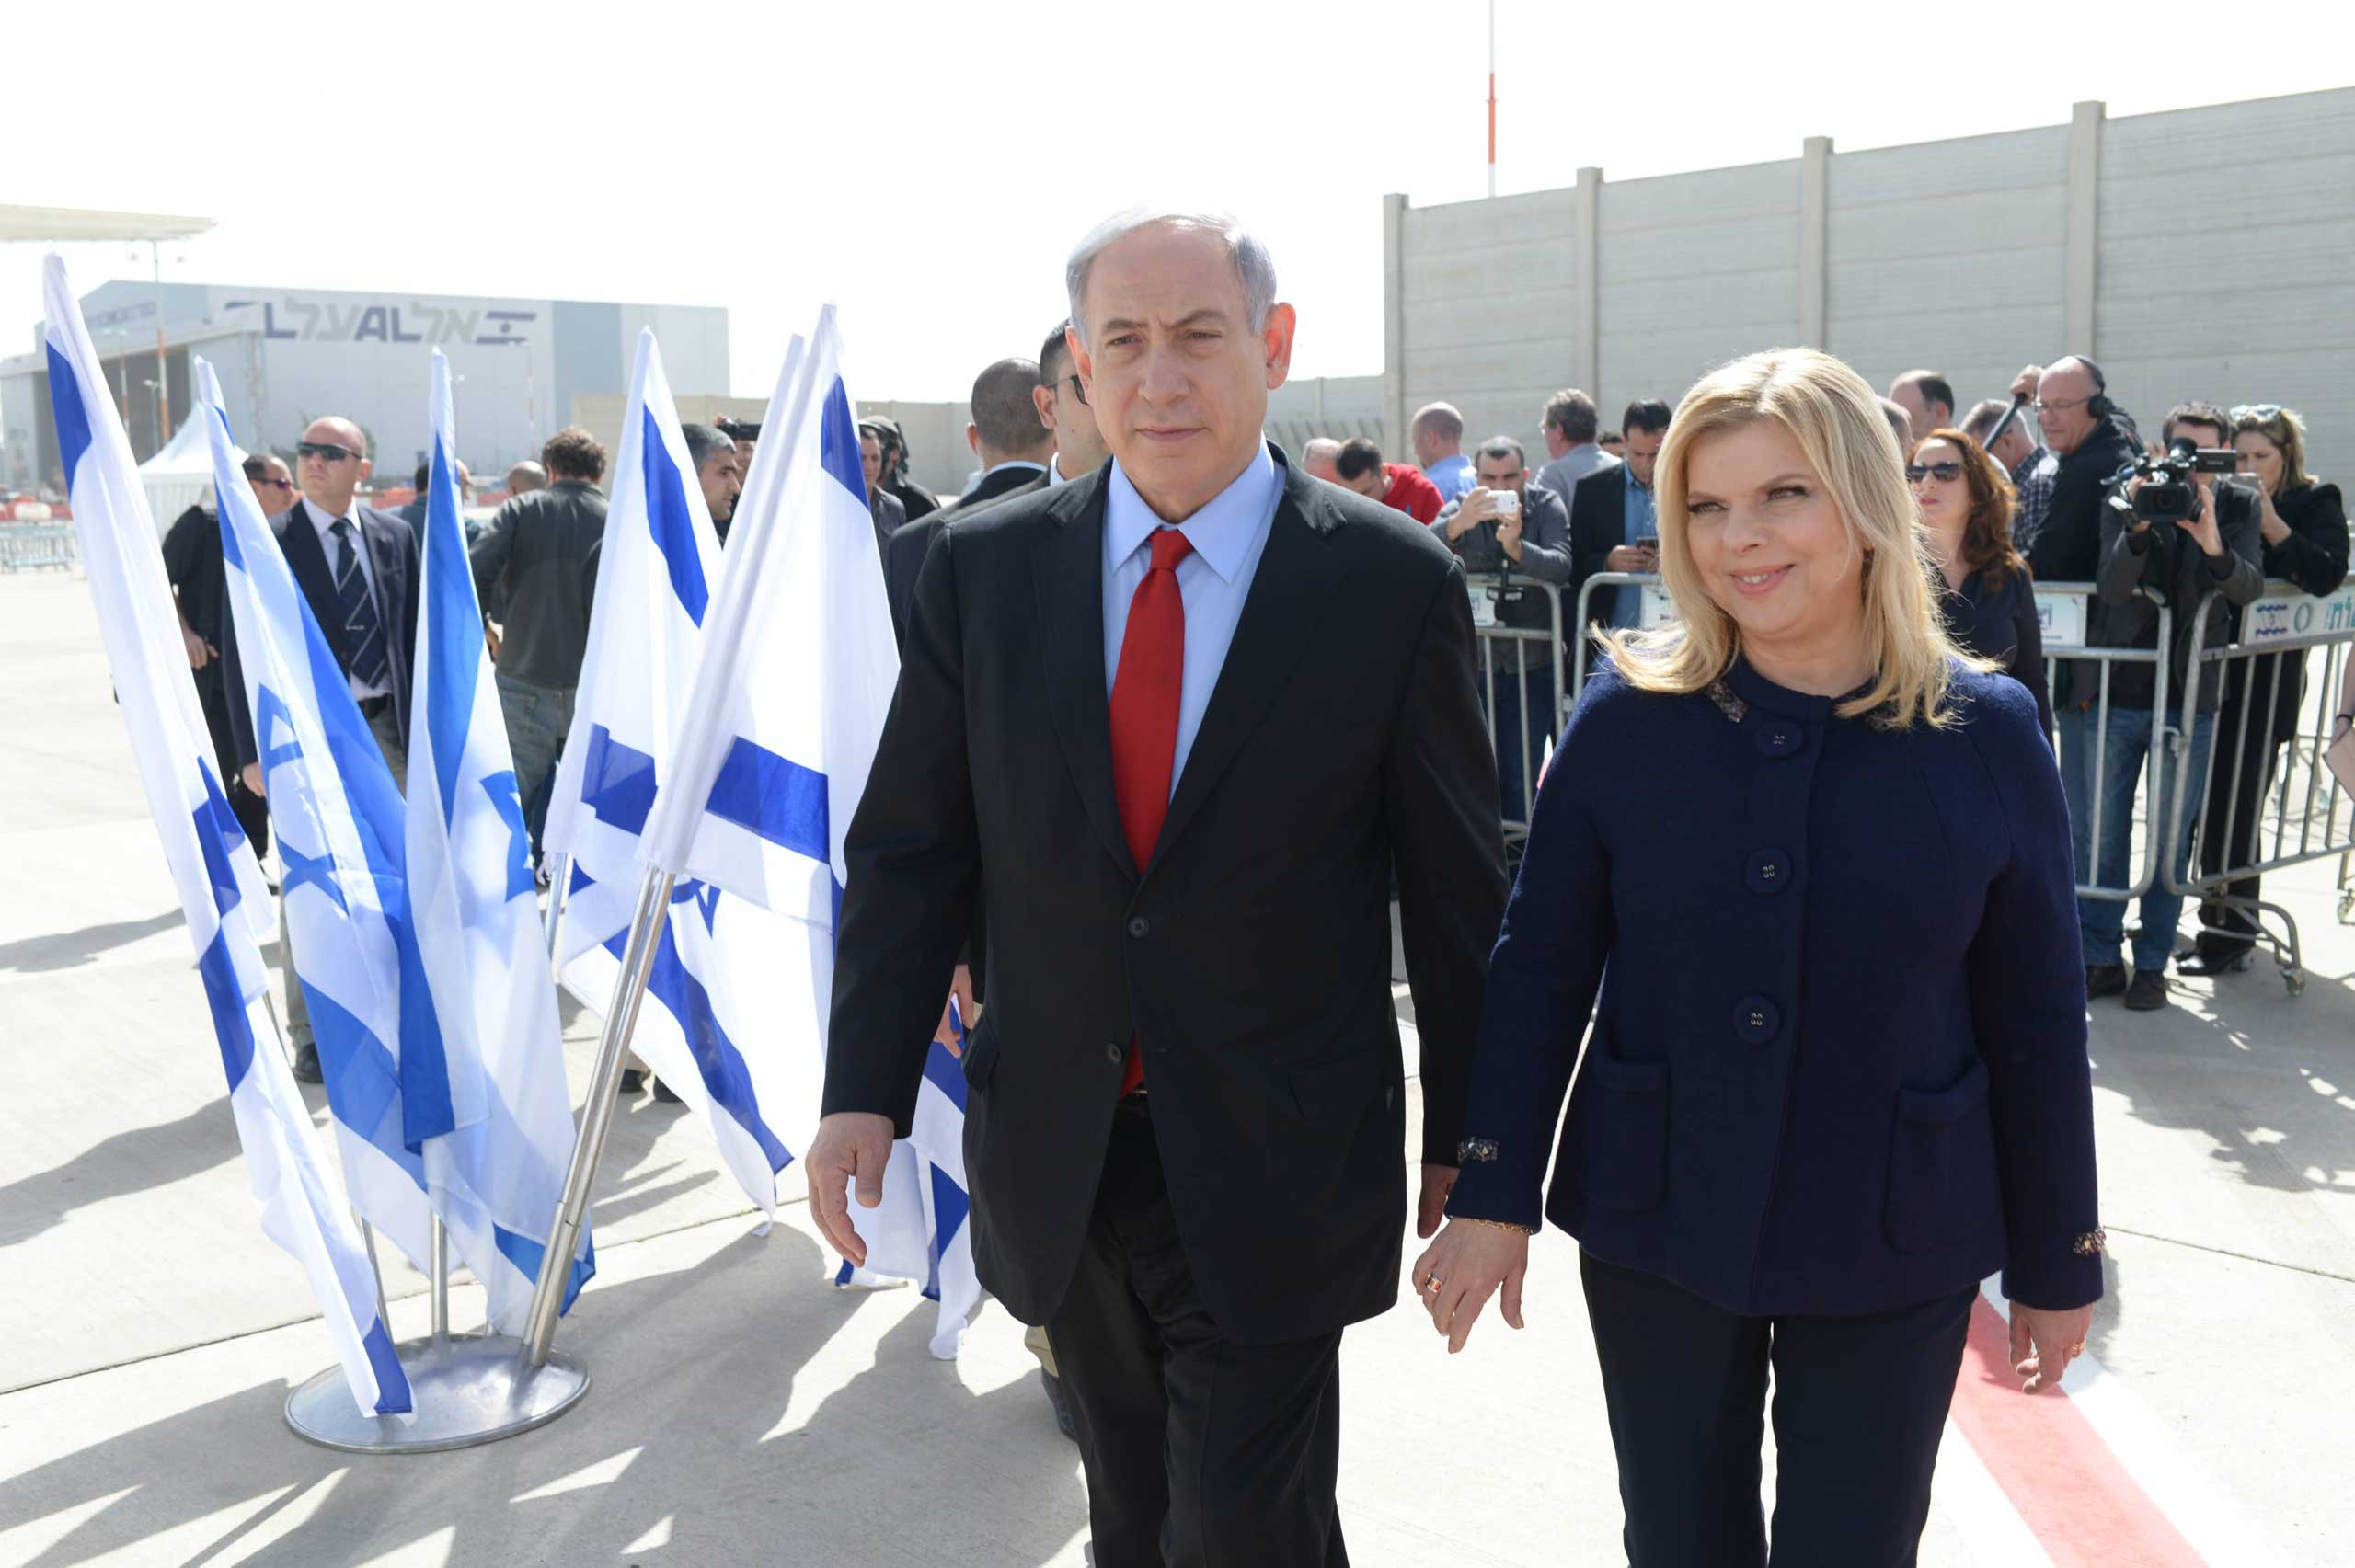 In this handout photo provided by the Israeli Government Press Office, Prime Minister Benjamin Netanyahu and his wife Sarah leave Tel Aviv on their way to Washington DC, on March 1, 2015.